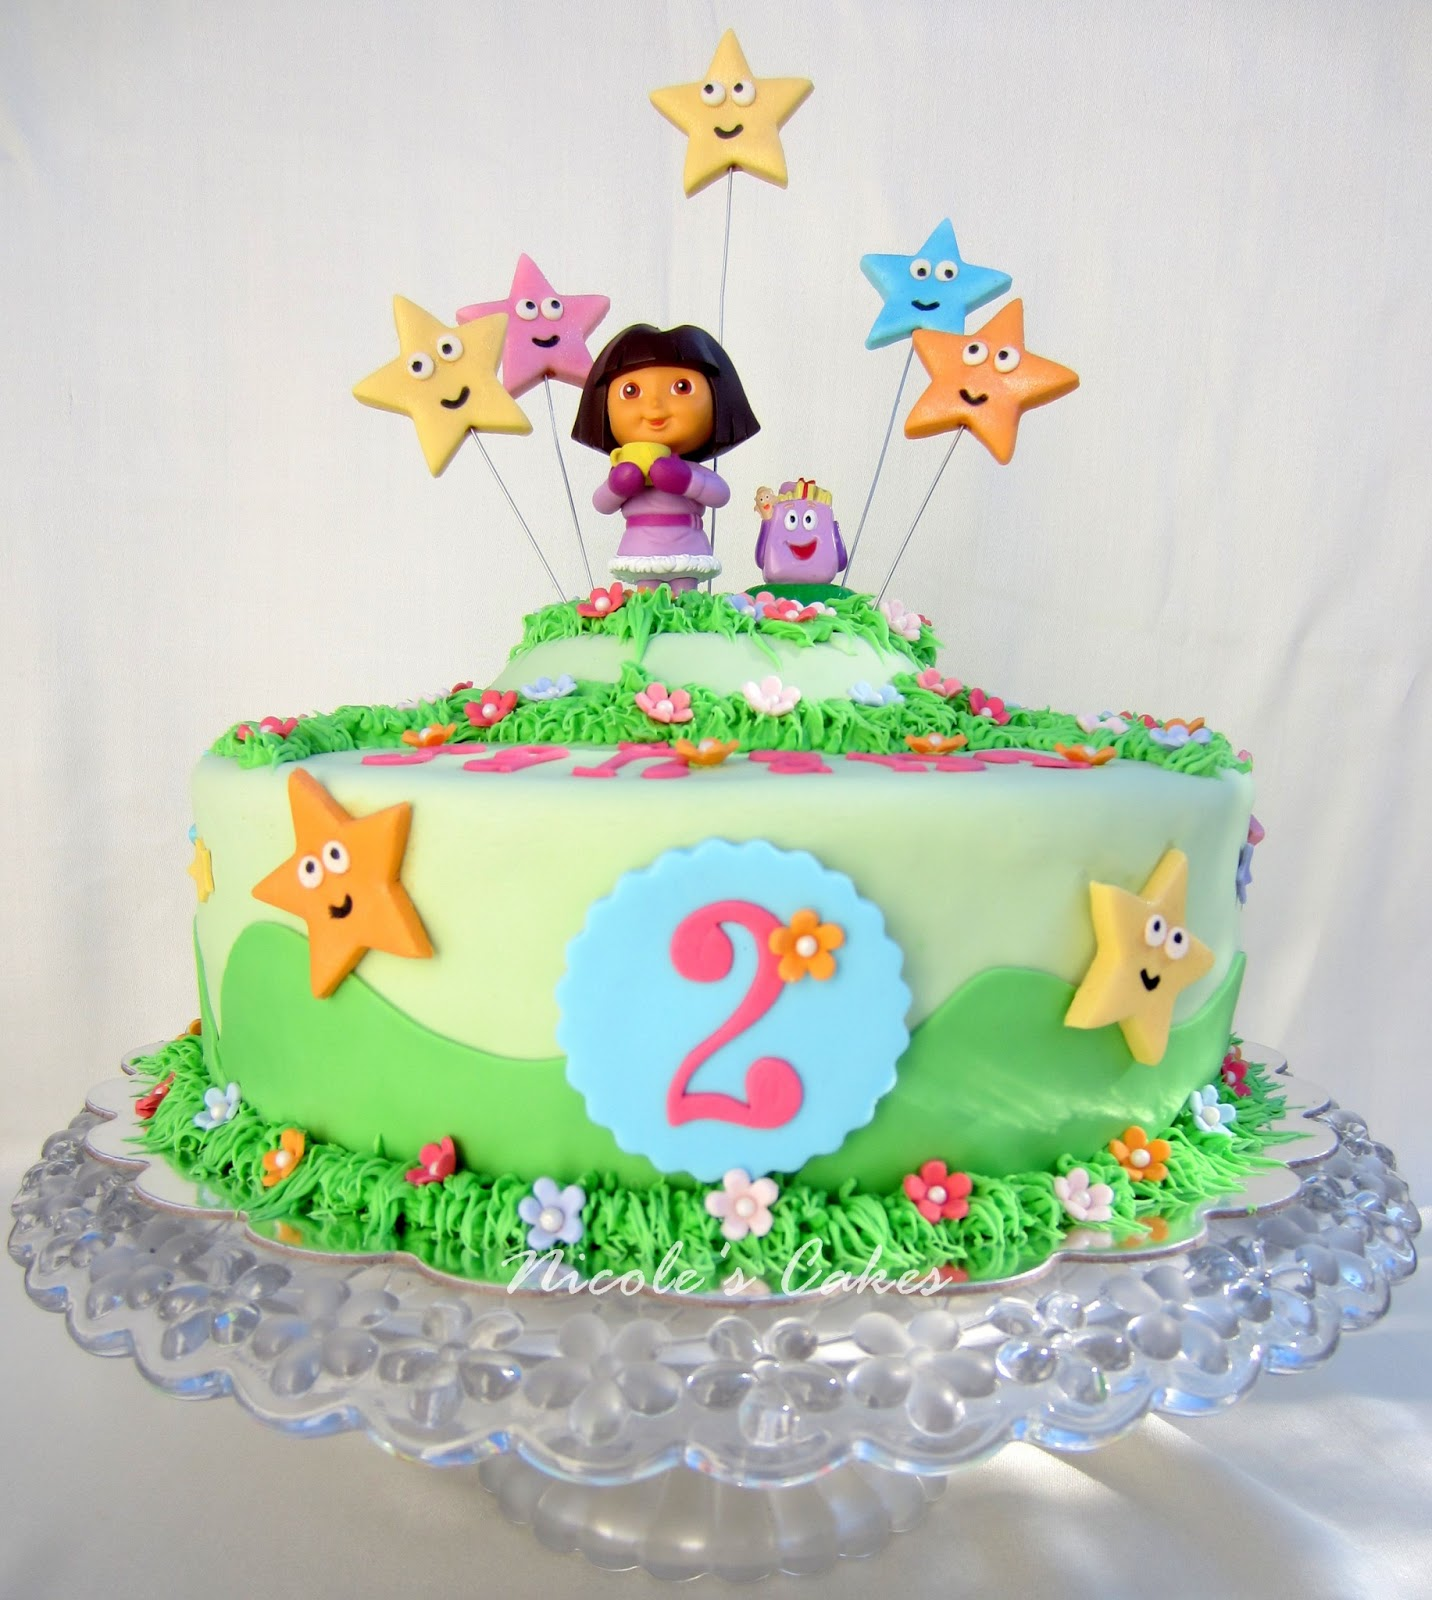 Confections Cakes Creations Dora The Explorer Birthday Cake